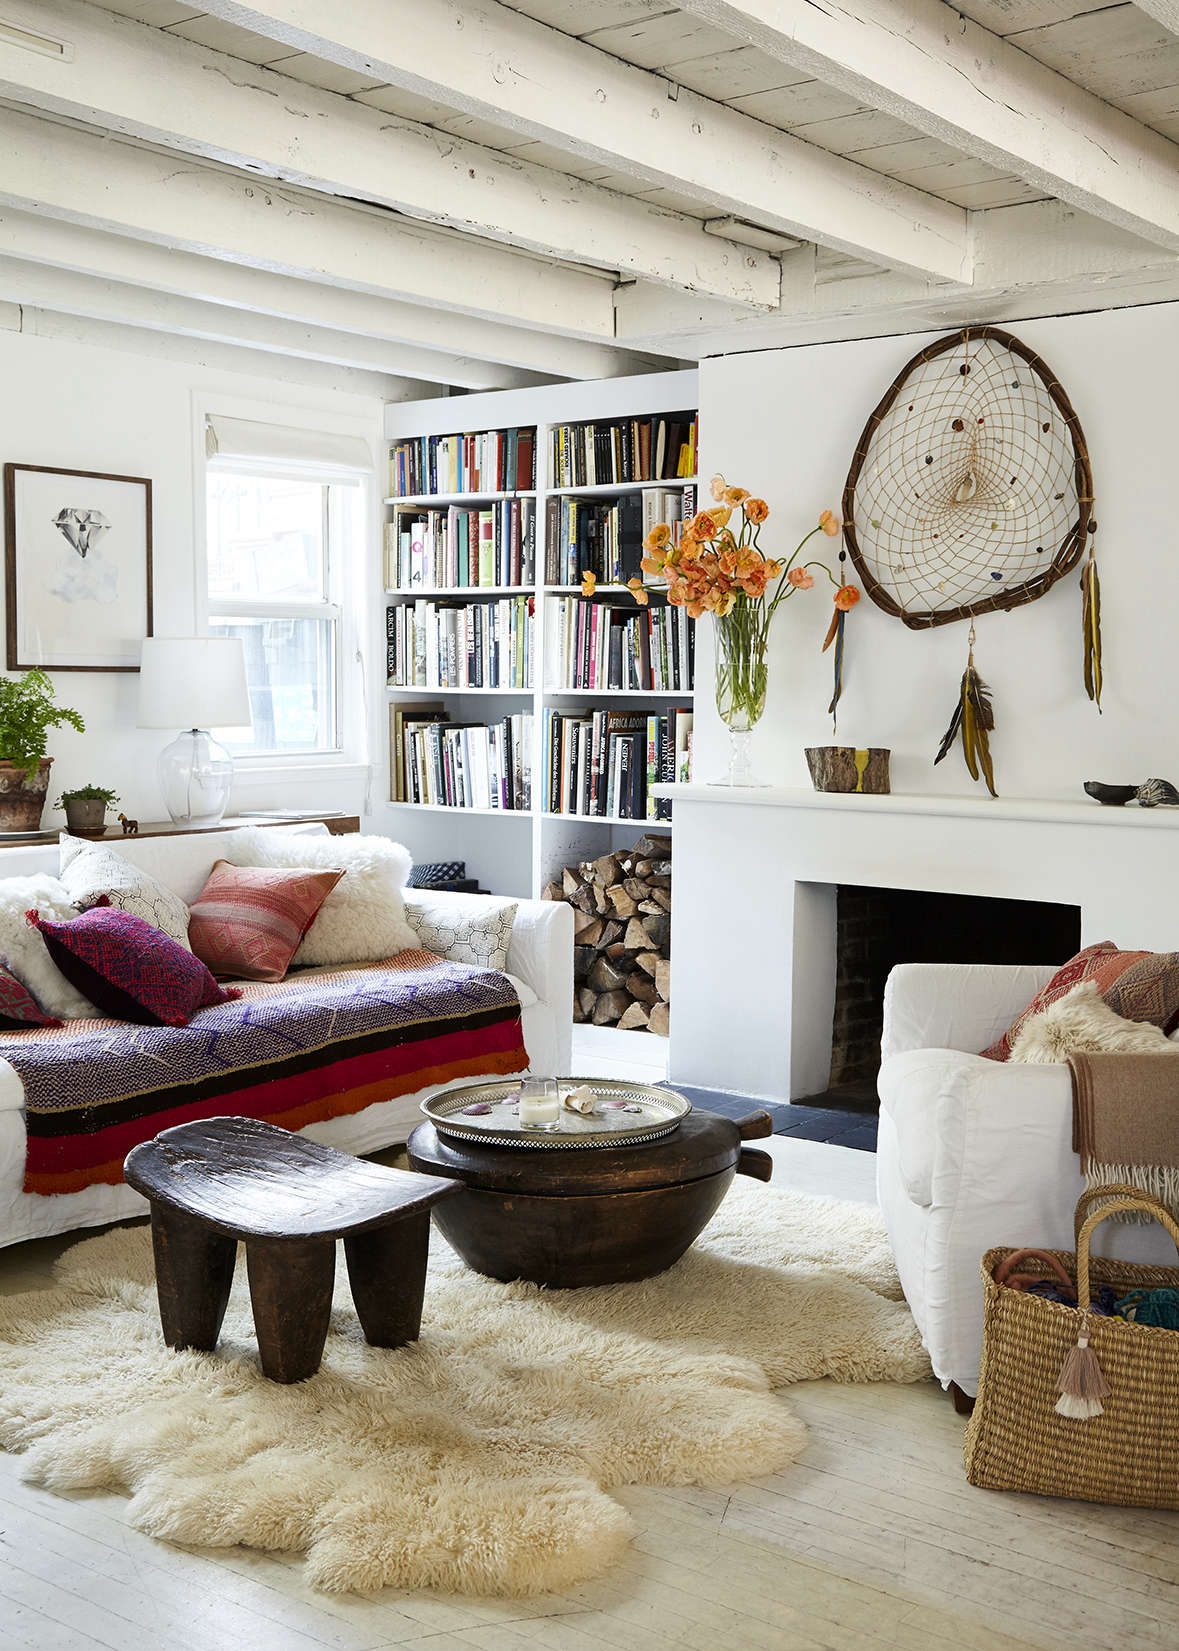 Embrace The Bright A Textile Shop Owner At Home In